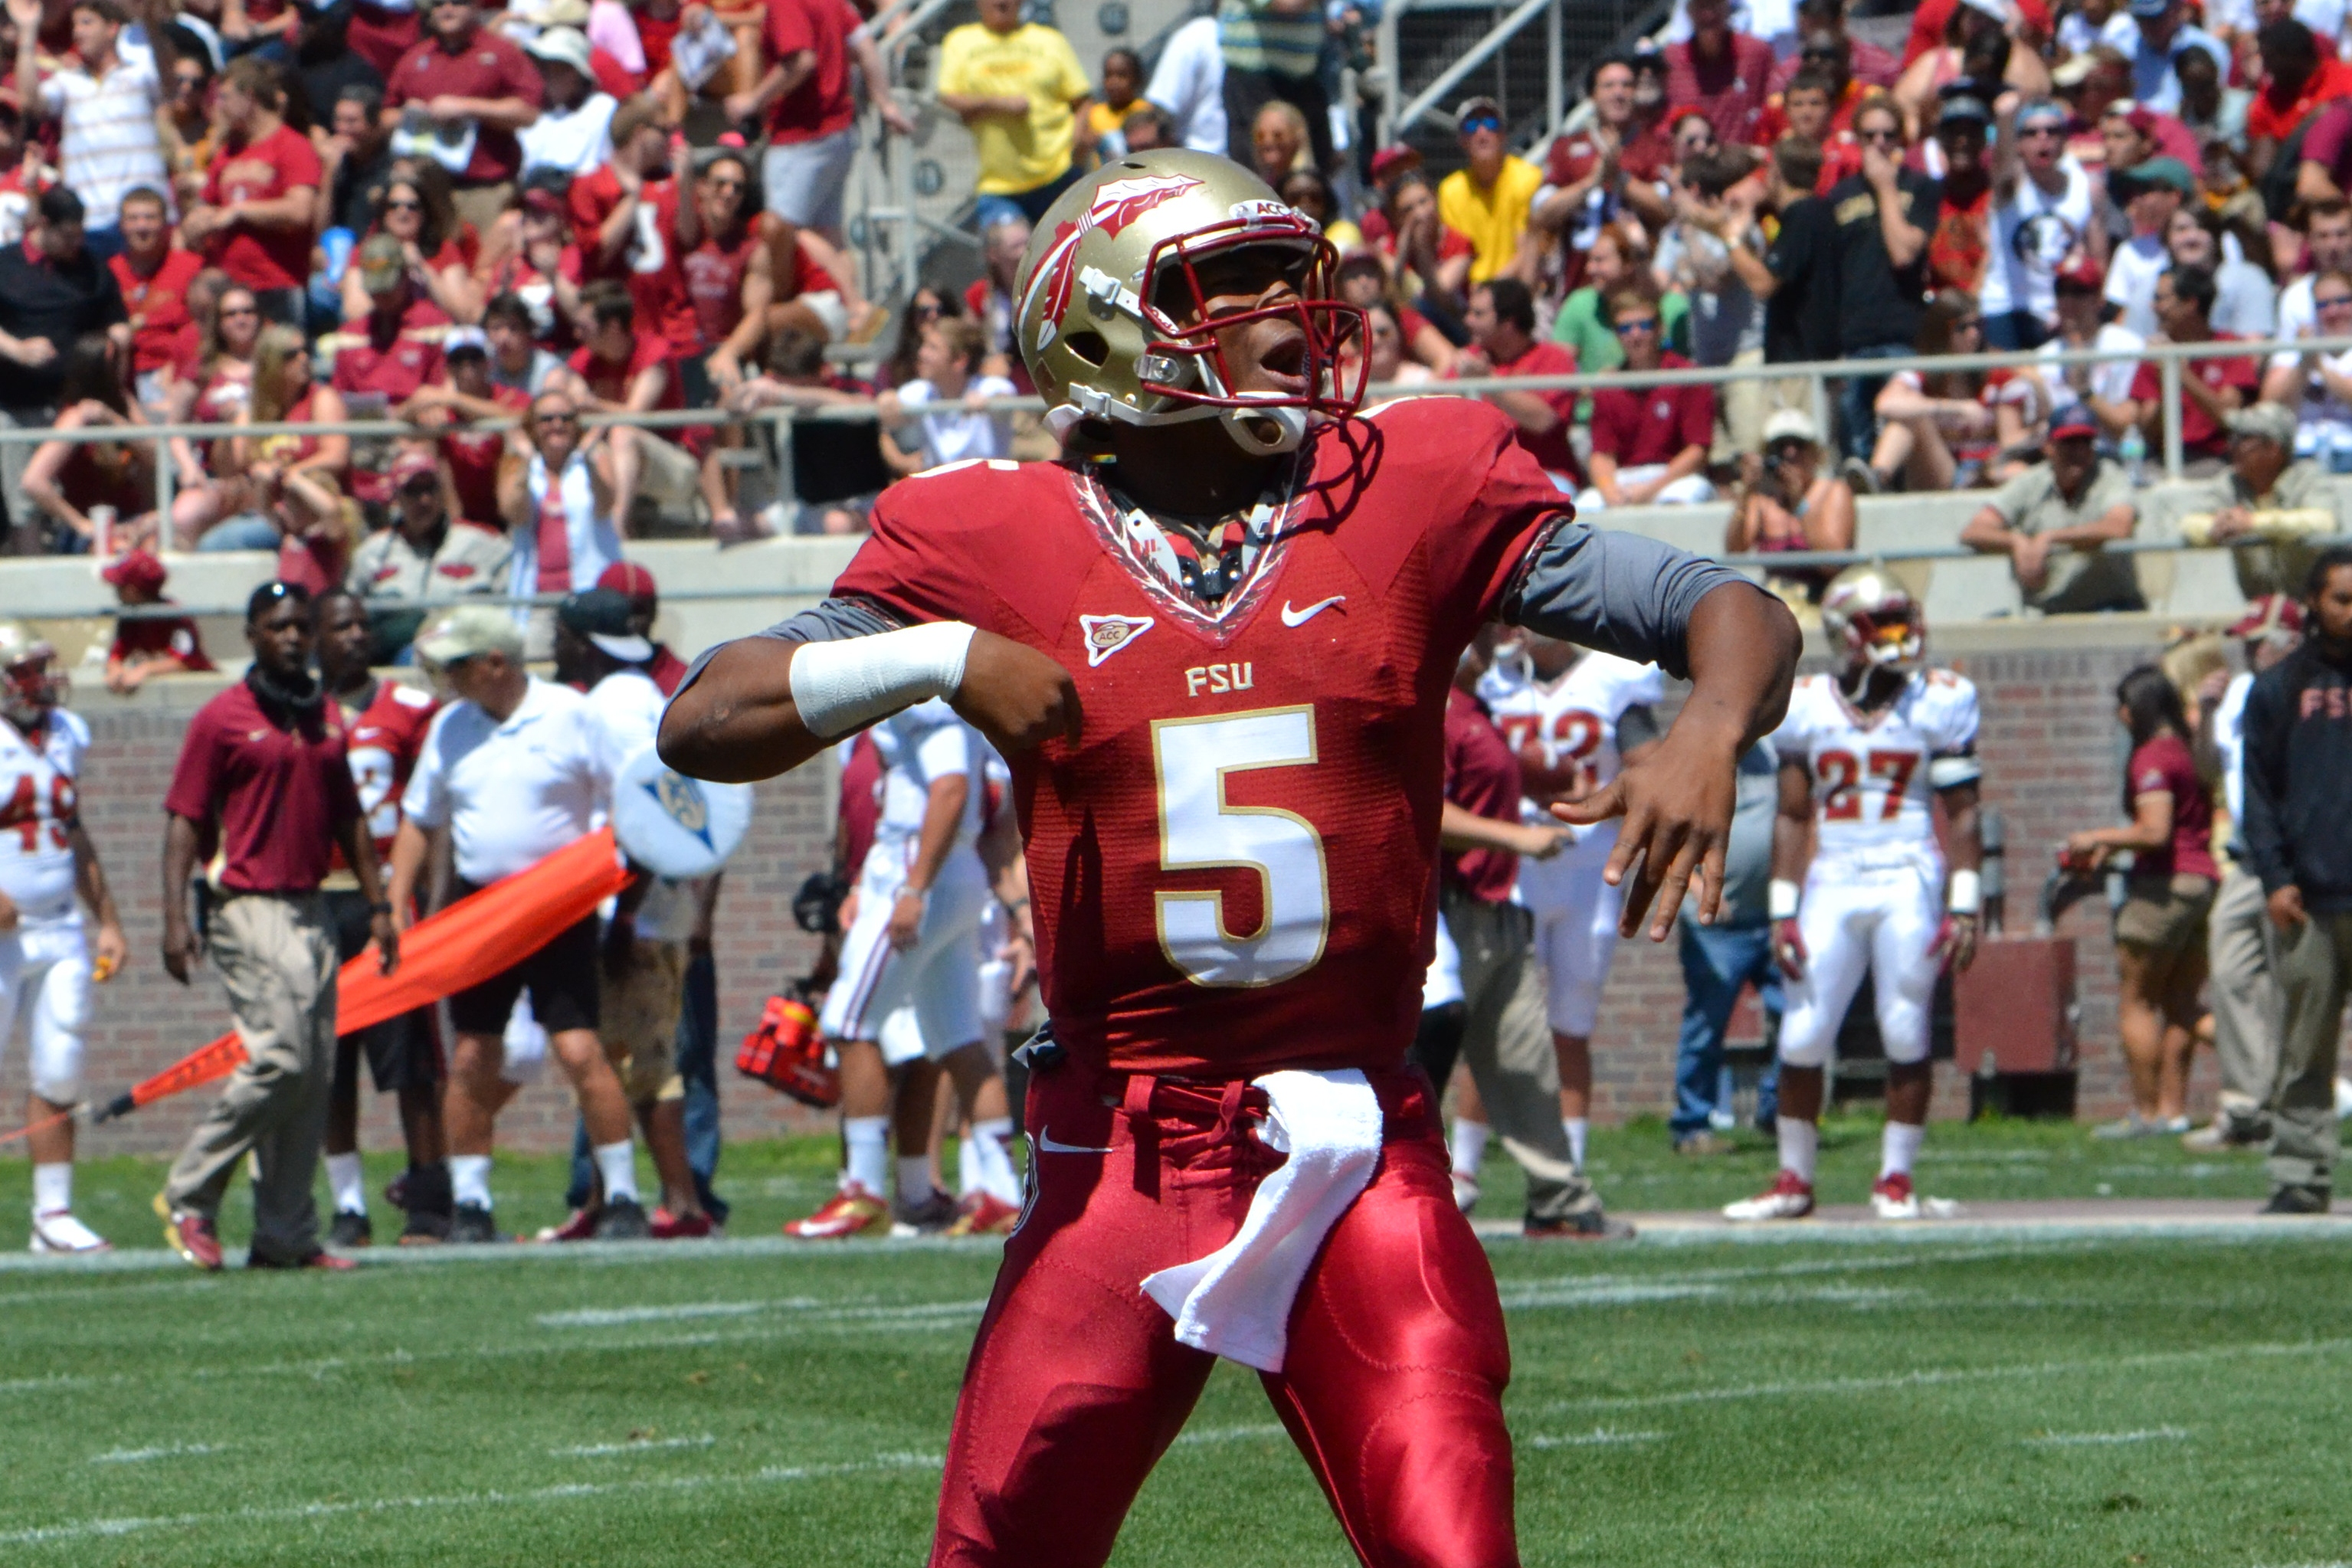 Jameis winston wins over fans in fsu spring game seminoles chant dsc0382 voltagebd Image collections